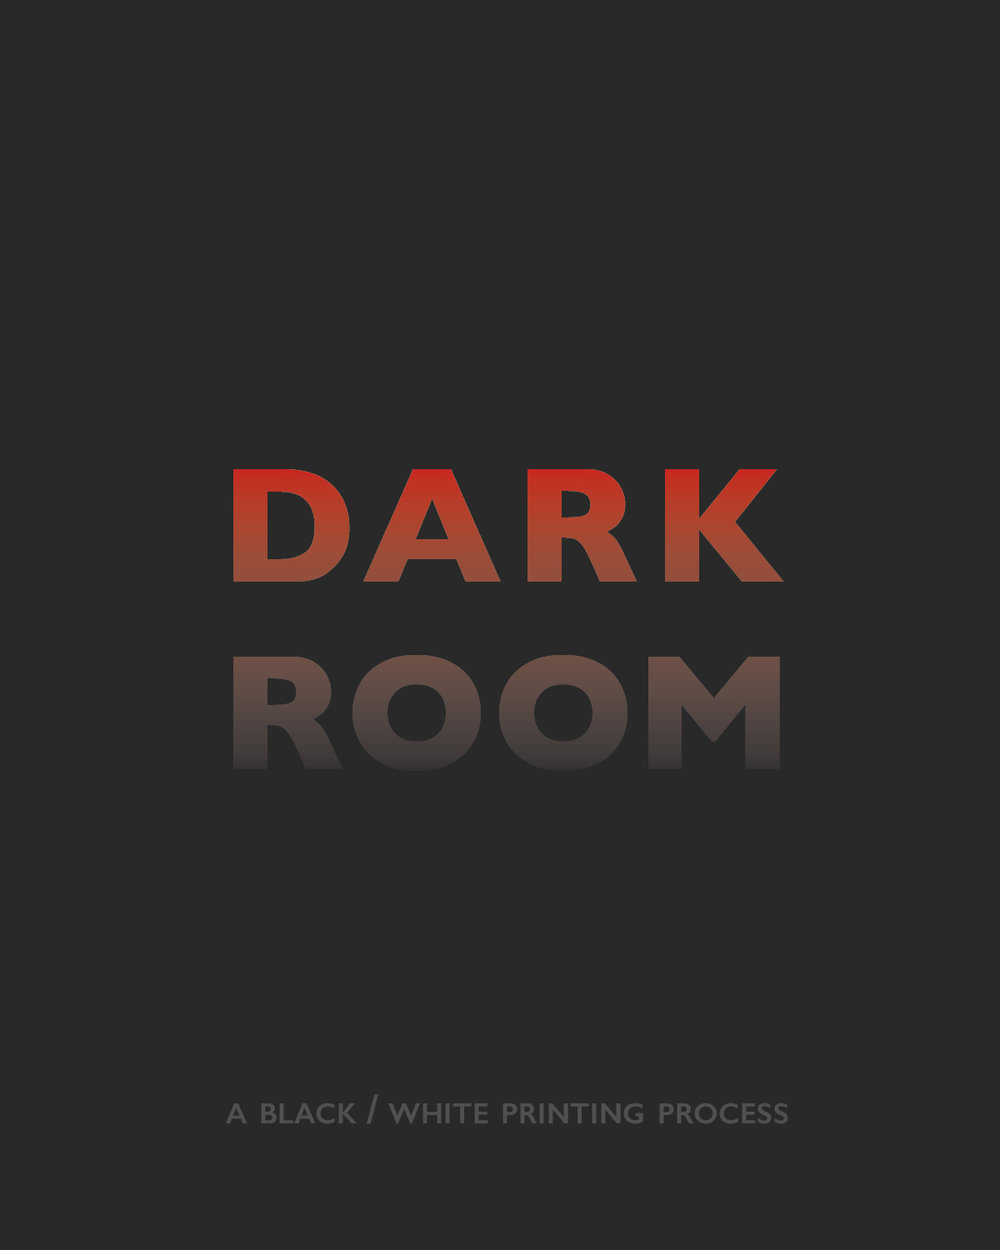 DARK-ROOM_Final-WEB.jpg